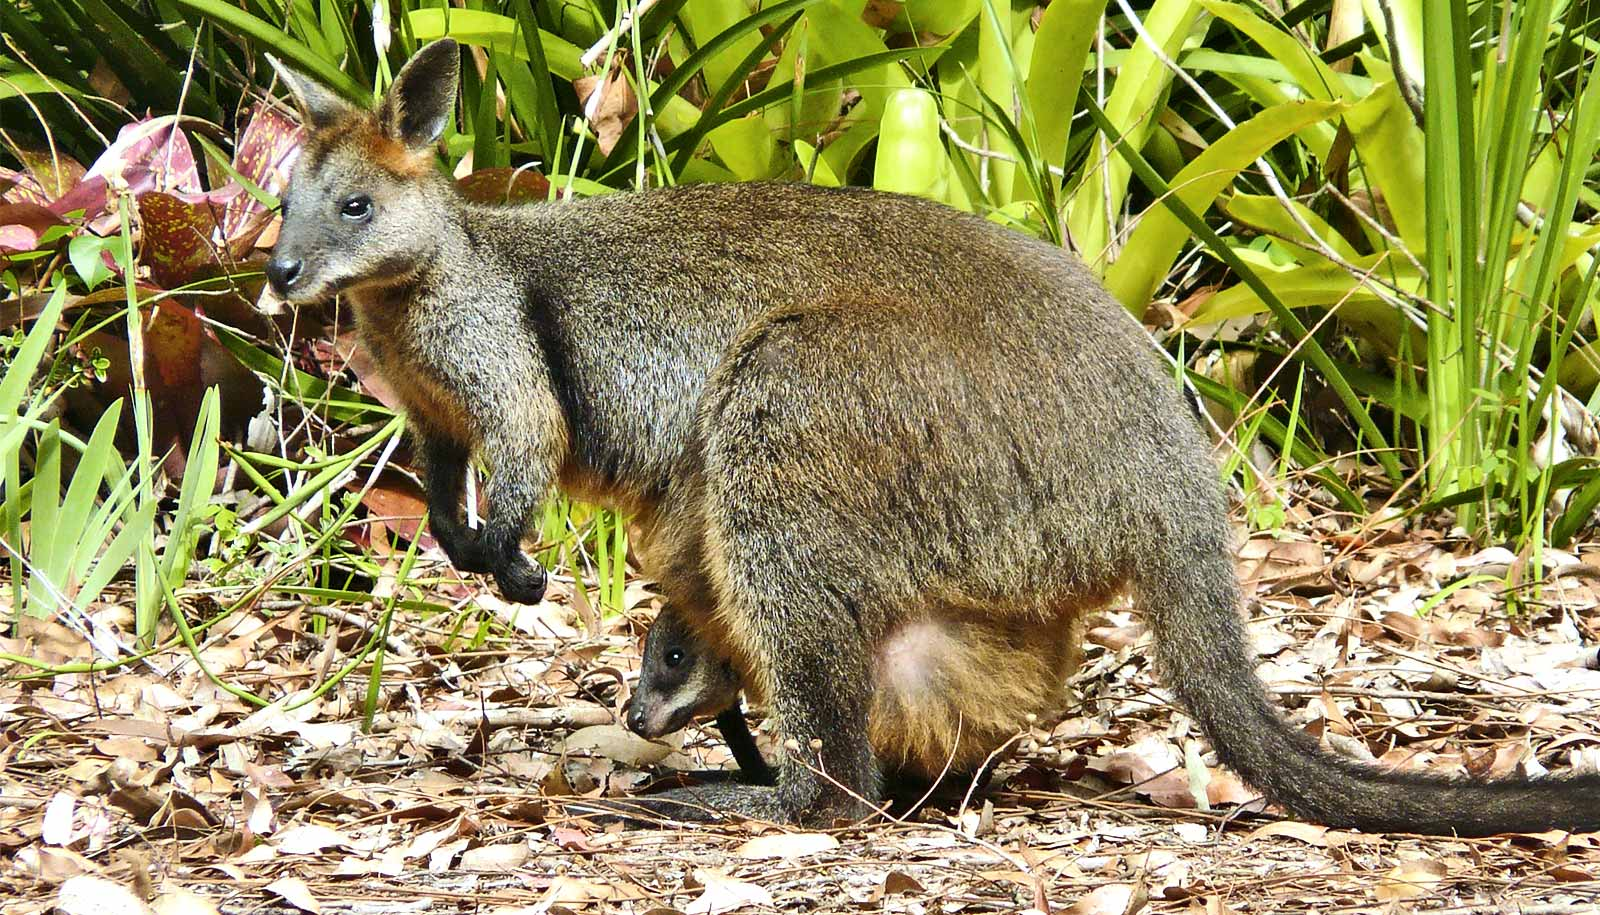 Swamp wallabies are permanently pregnant - Futurity